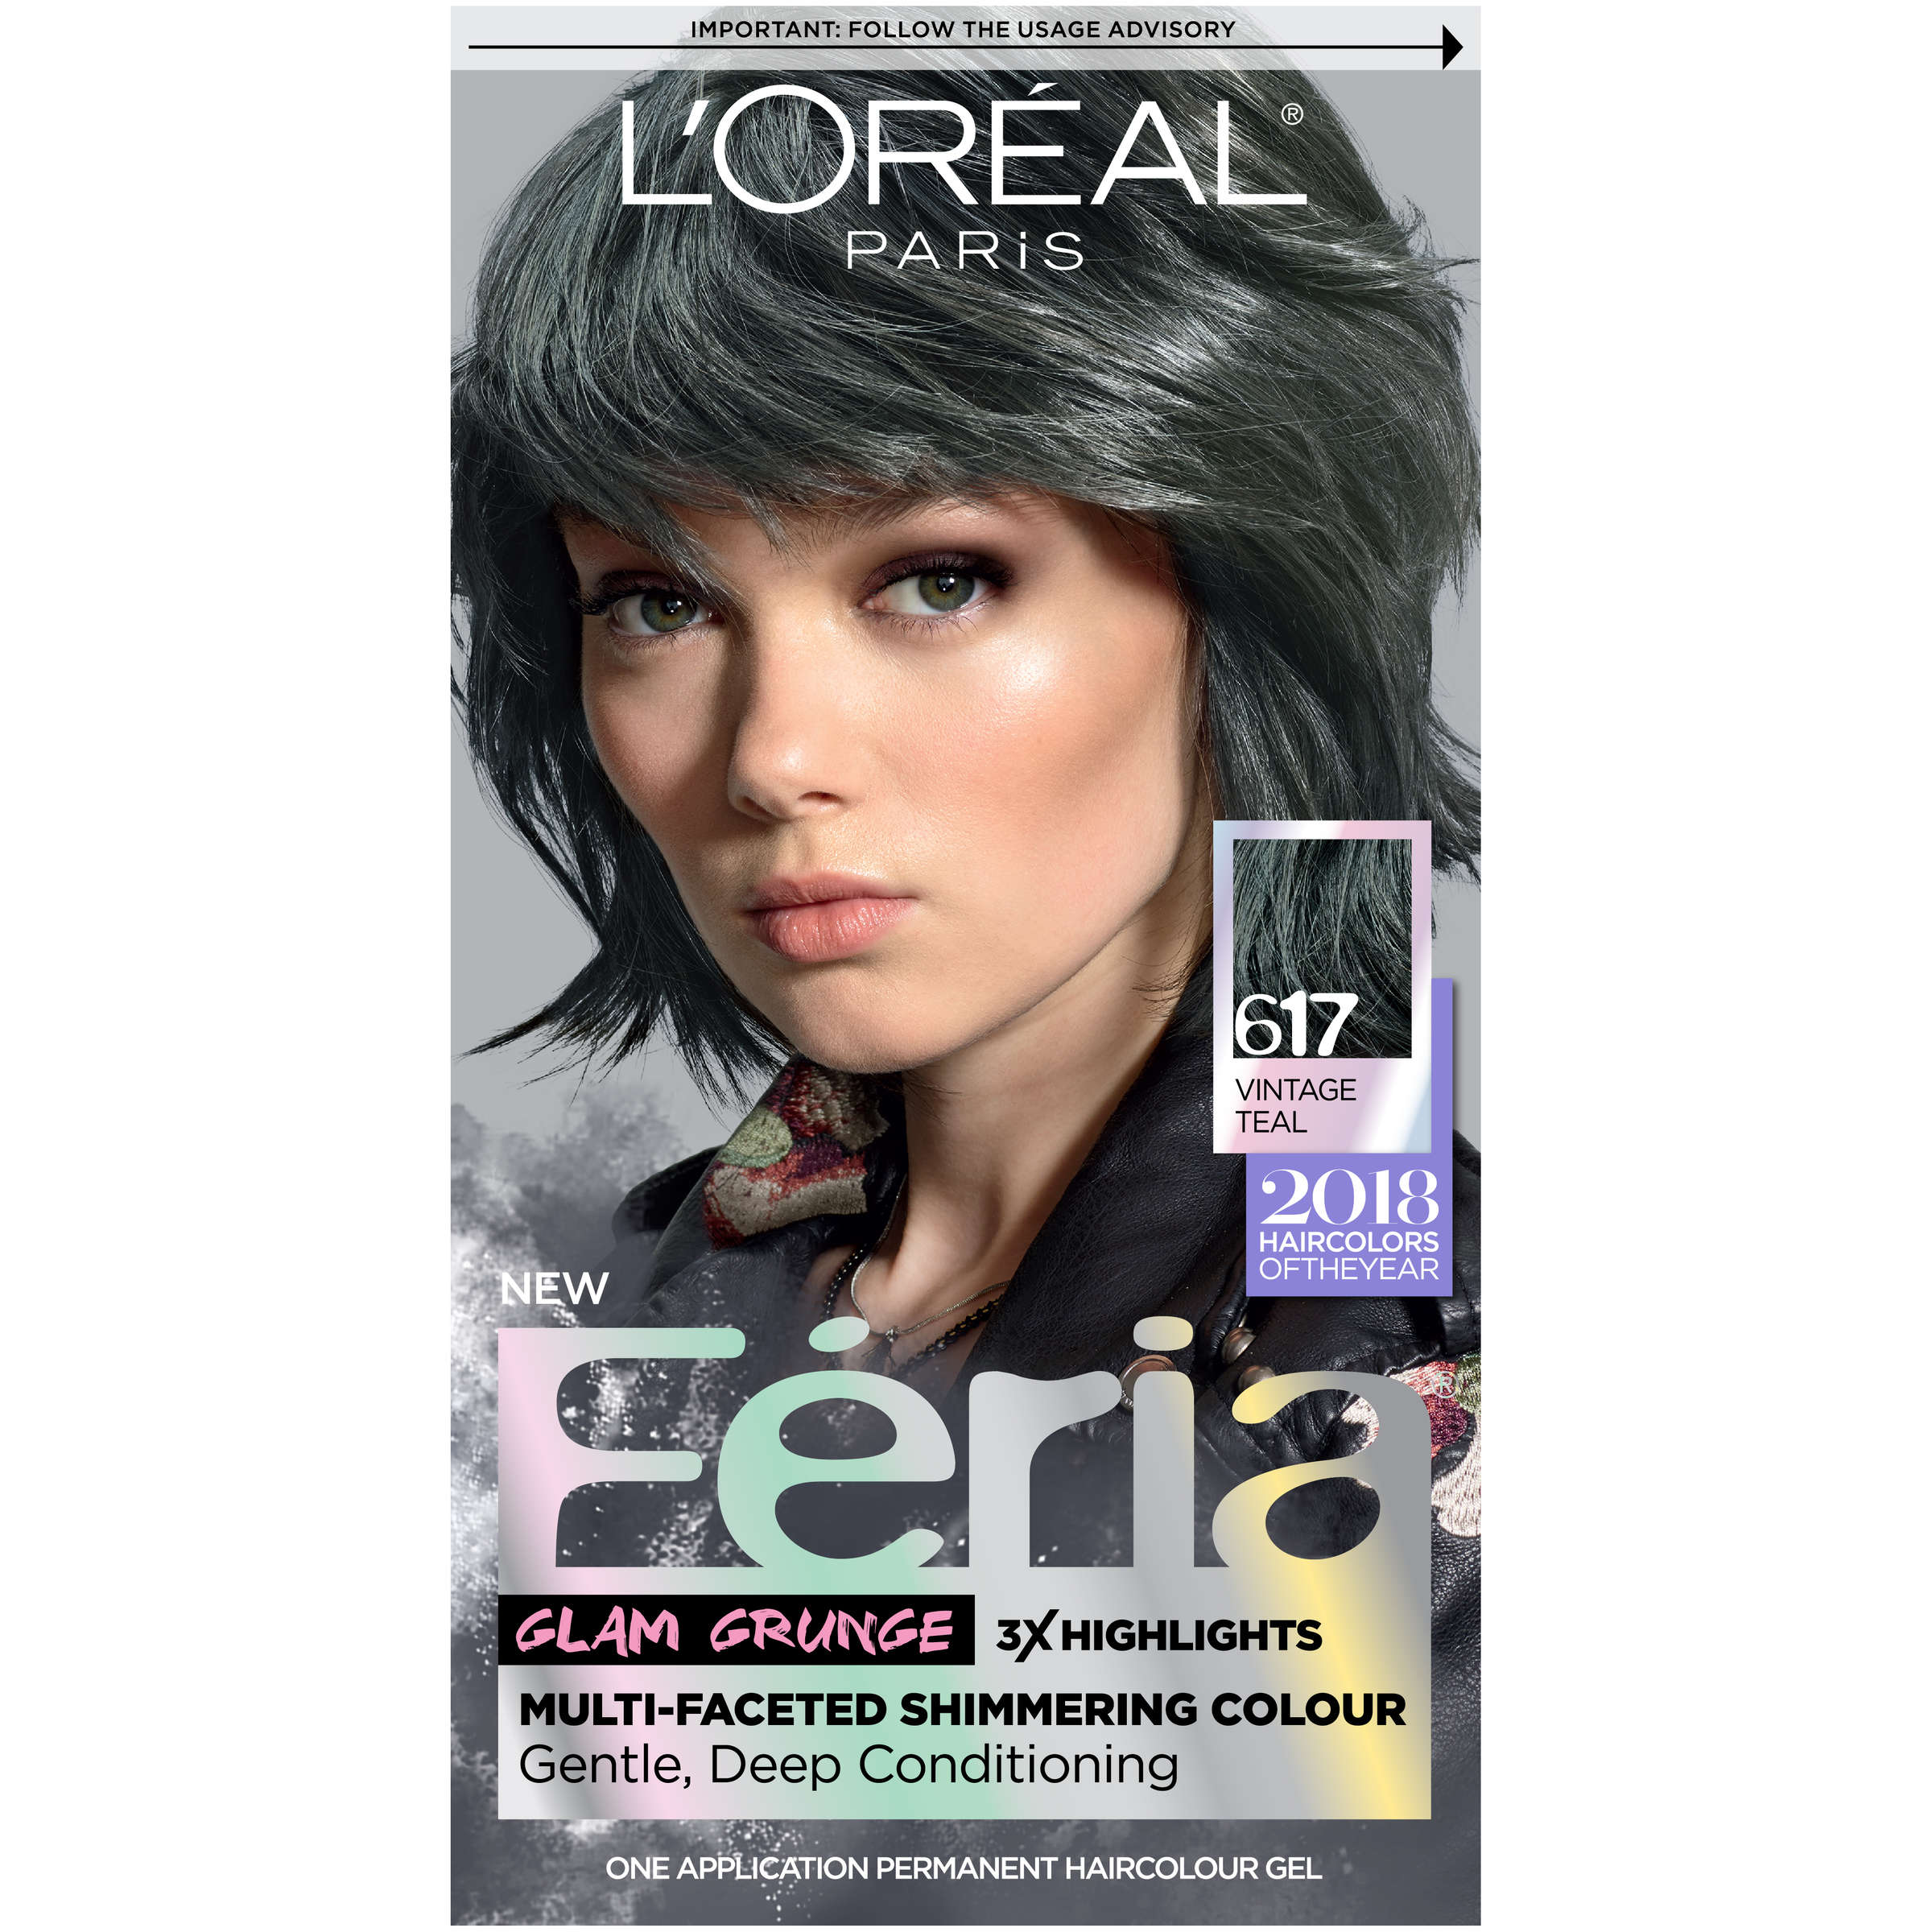 L Oreal Paris Feria Permanent Hair Color 617 Vintage Teal